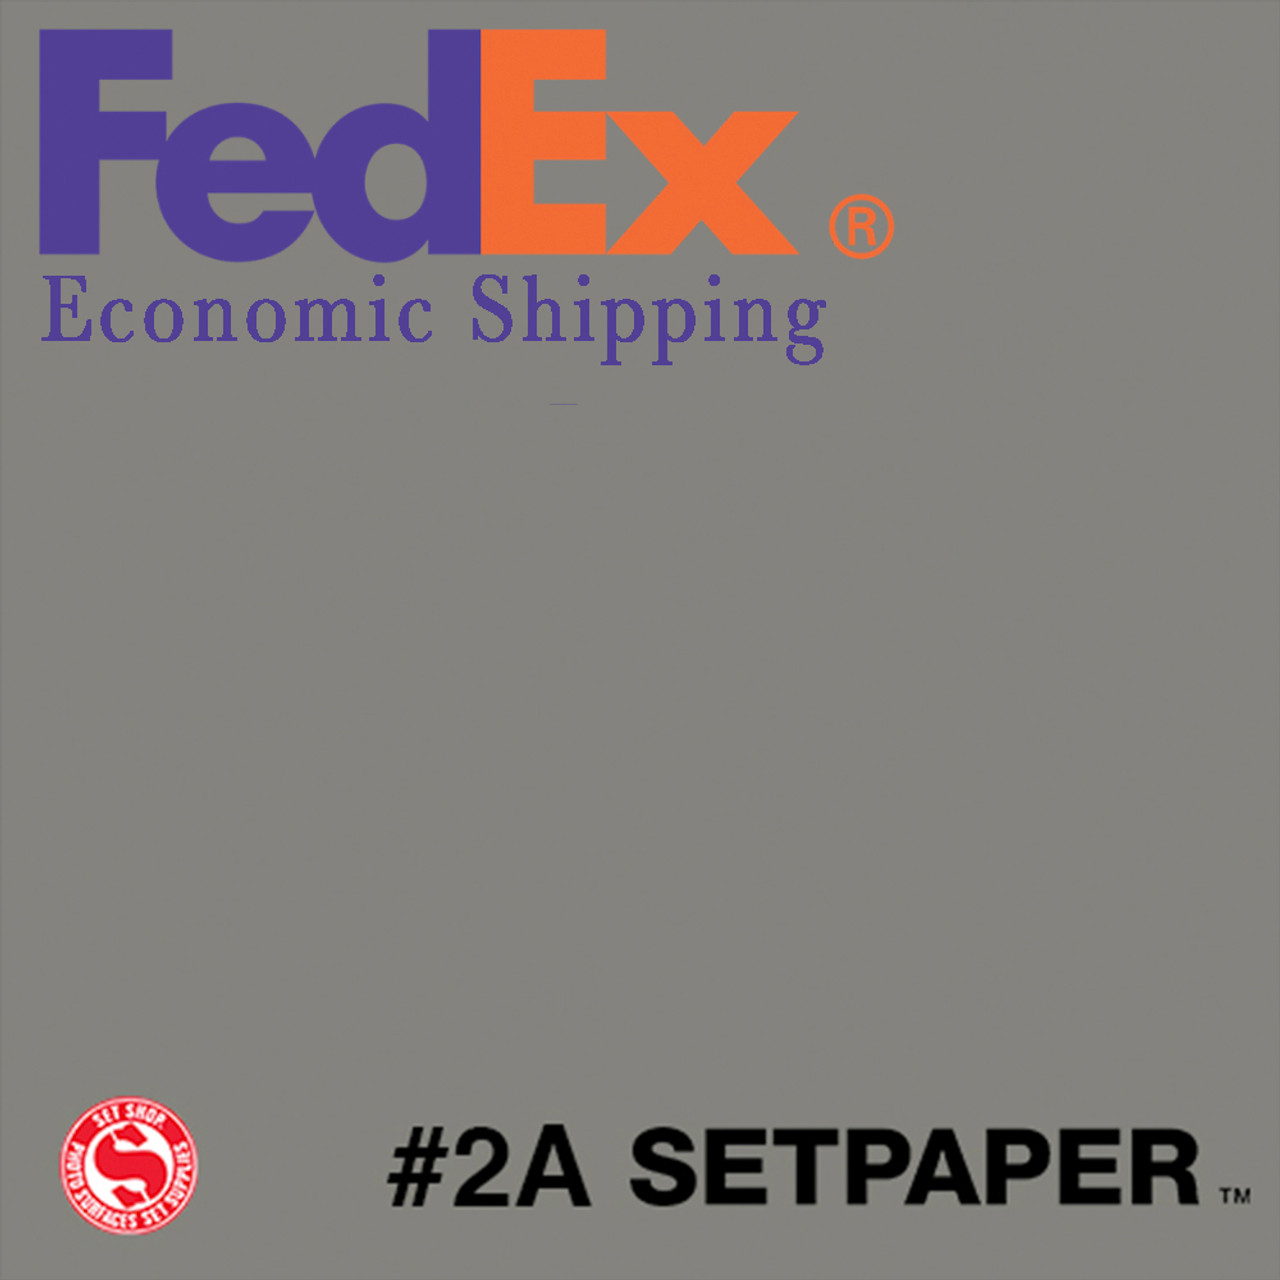 "(ECONOMIC SHIPPING) SETPAPER - THUNDER GREY 48"" x 36' (1.3 x 11m)"